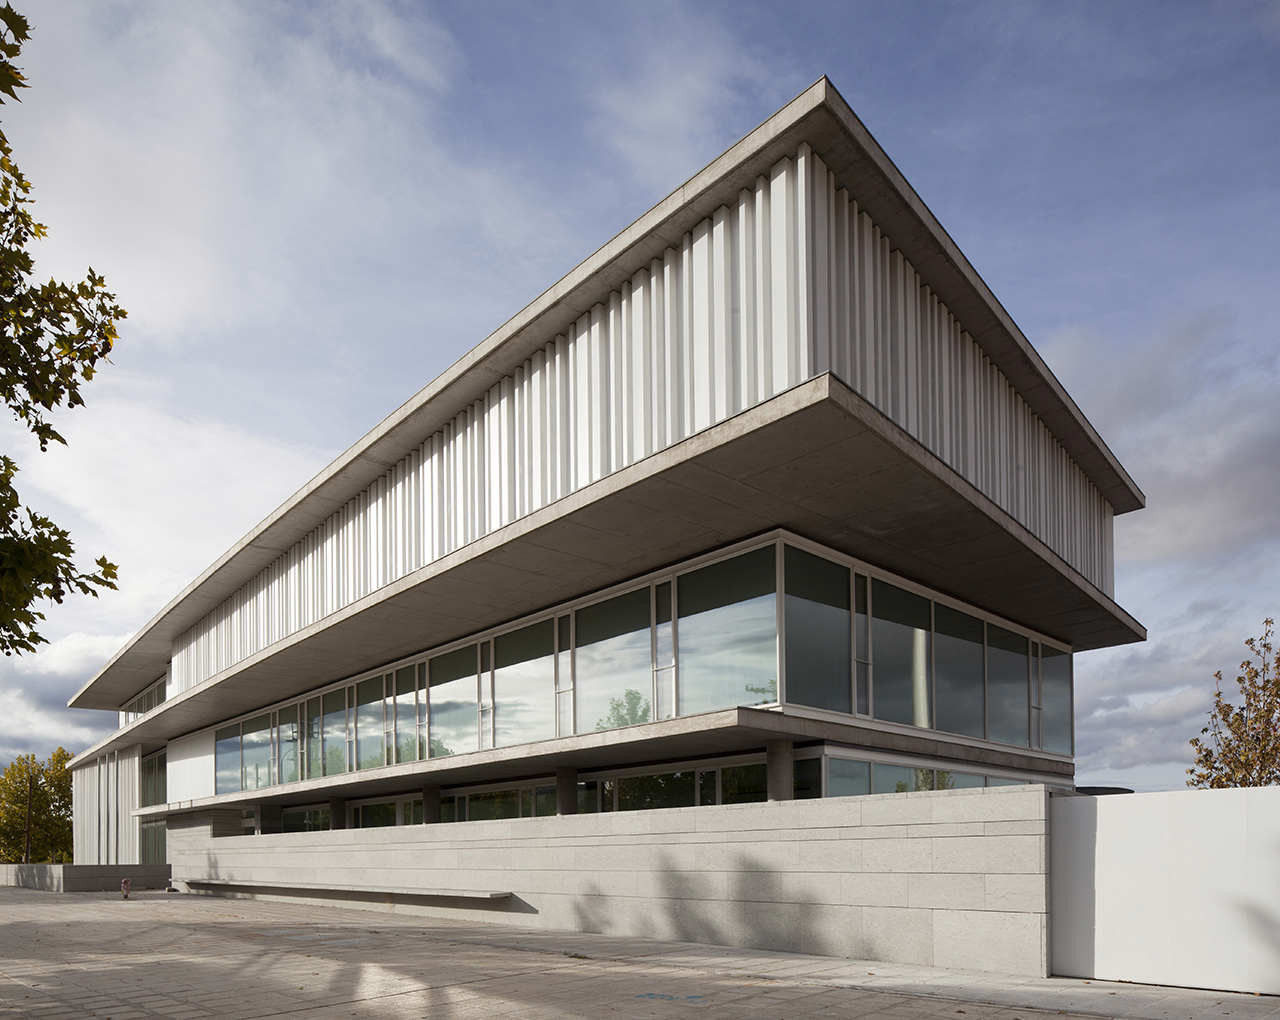 New Headquarters Of The Healthcare And Social Affairs Ministry in Toledo / TASH, © Miguel de Guzmán